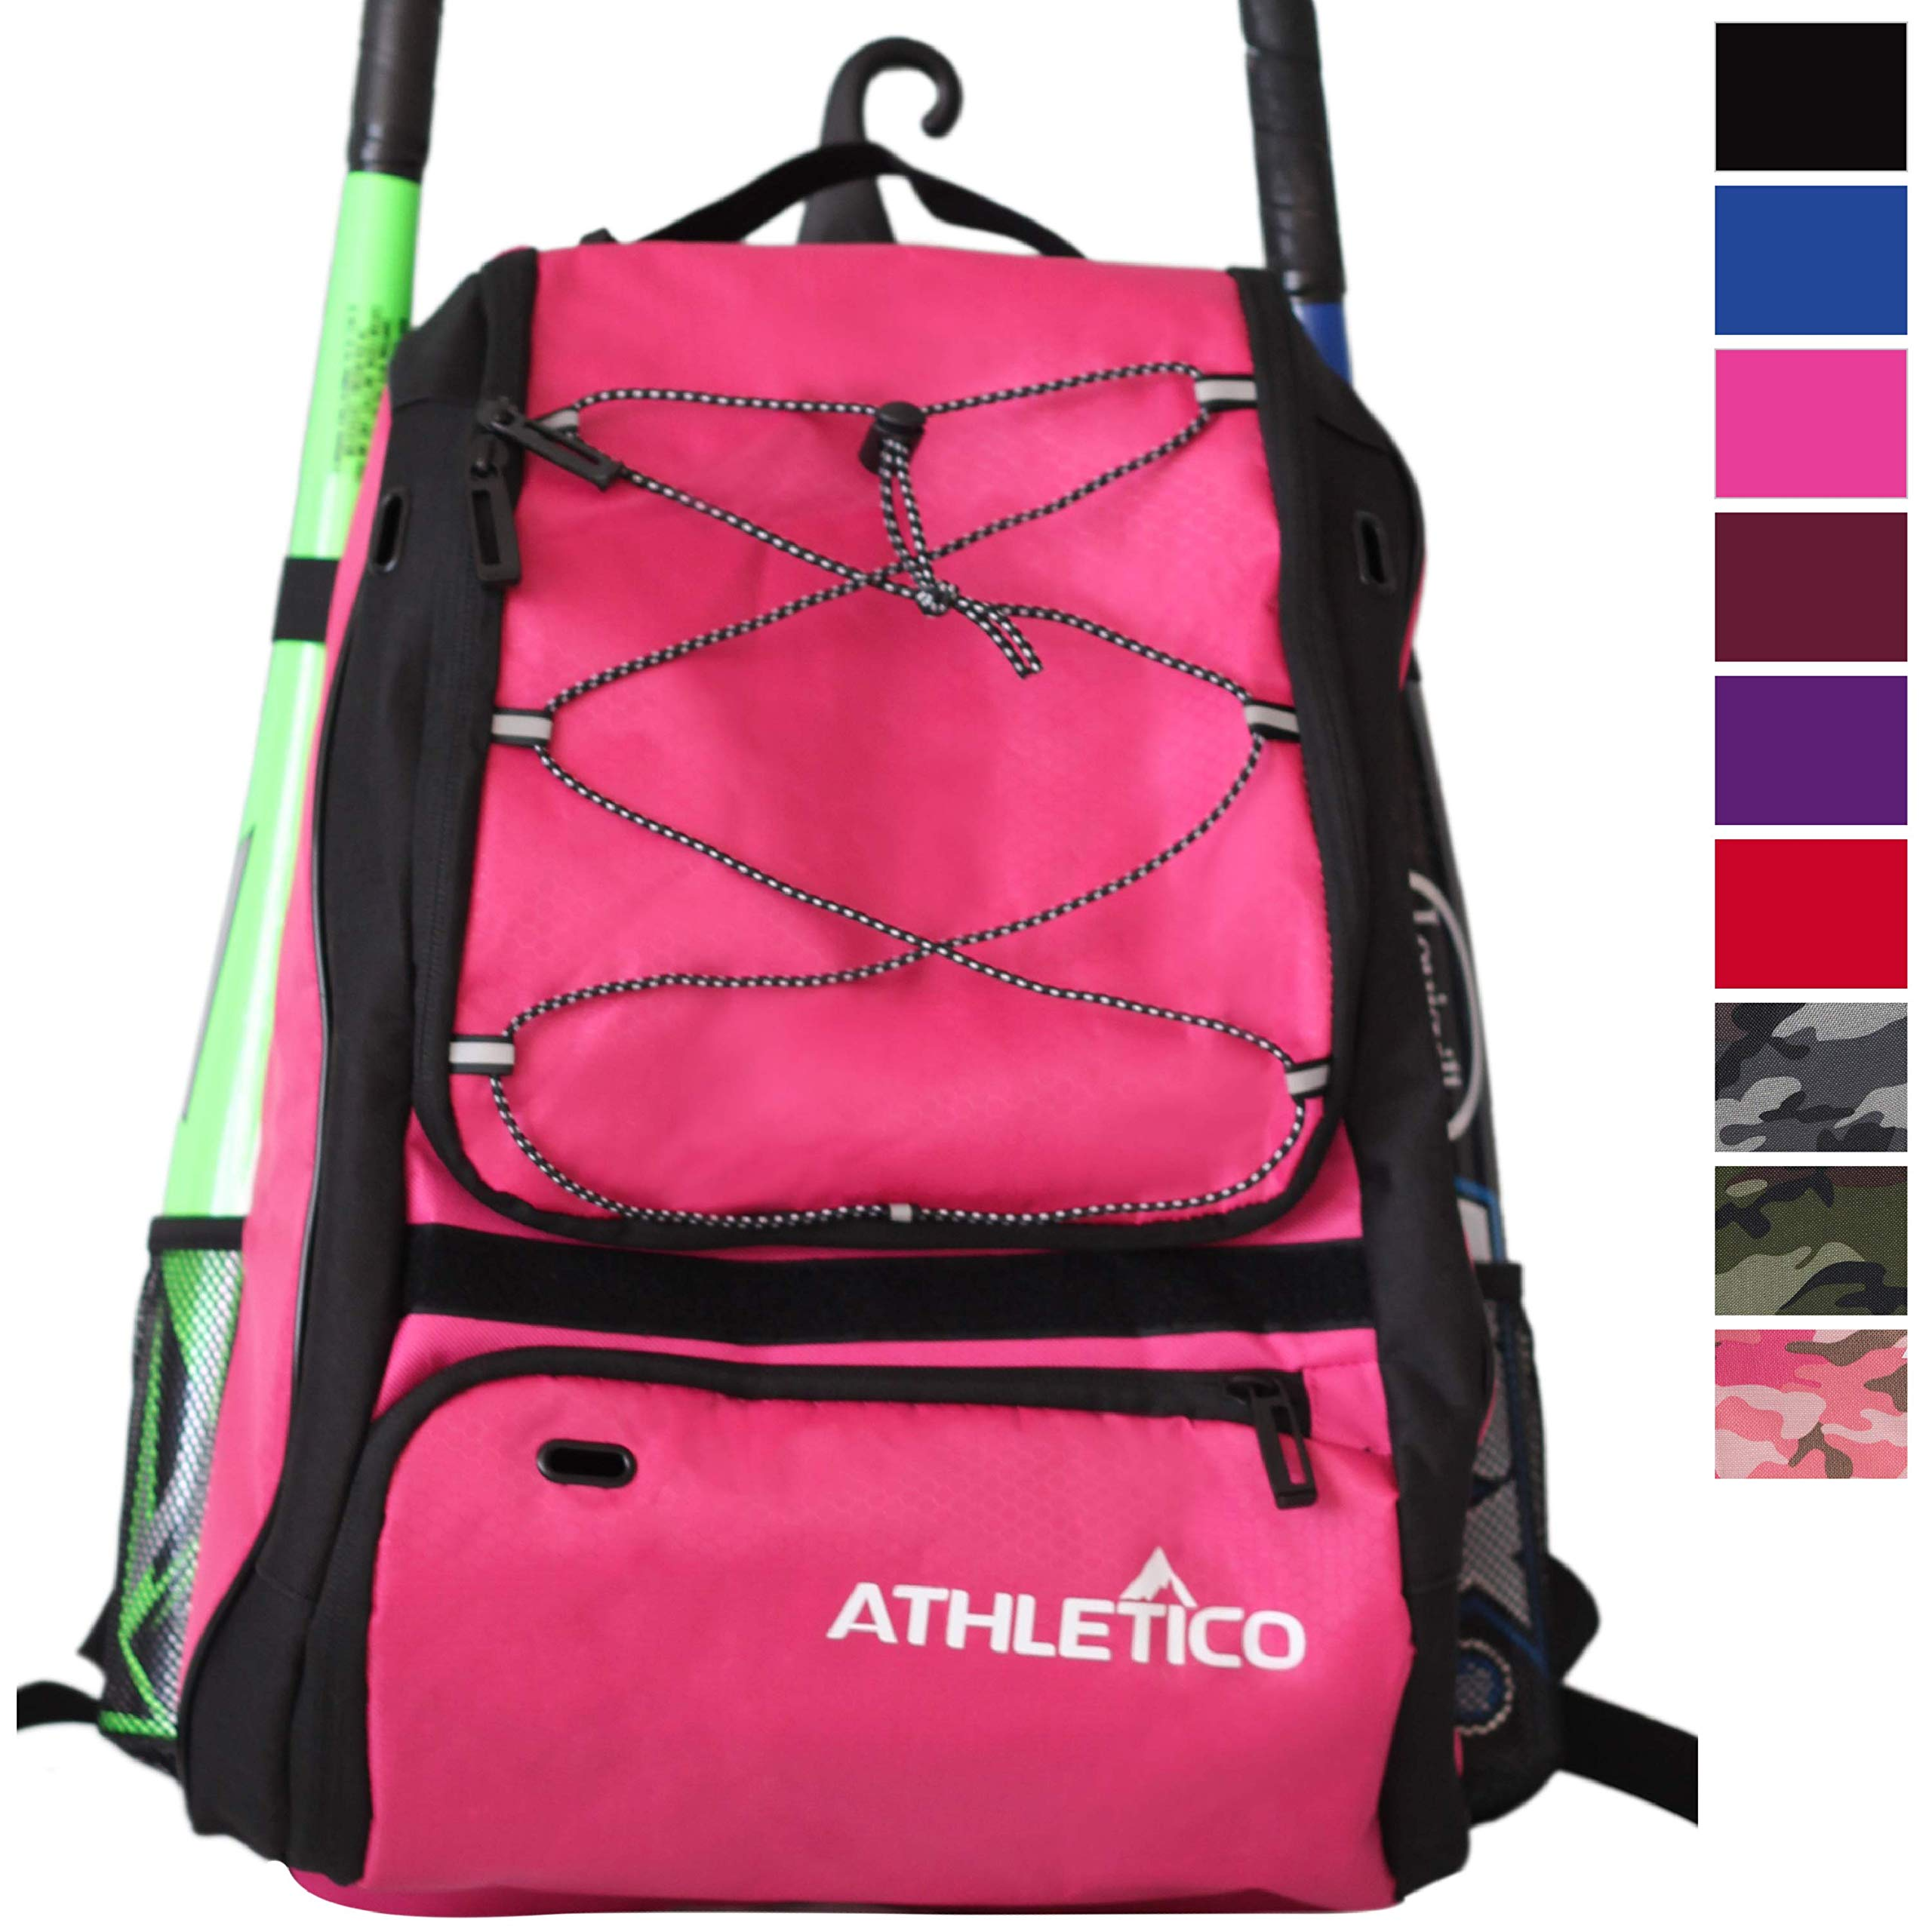 Athletico Baseball Bat Bag - Backpack for Baseball, T-Ball & Softball Equipment & Gear for Youth and Adults | Holds Bat, Helmet, Glove, Shoes | Shoe Compartment & Fence Hook (Magenta) by Athletico